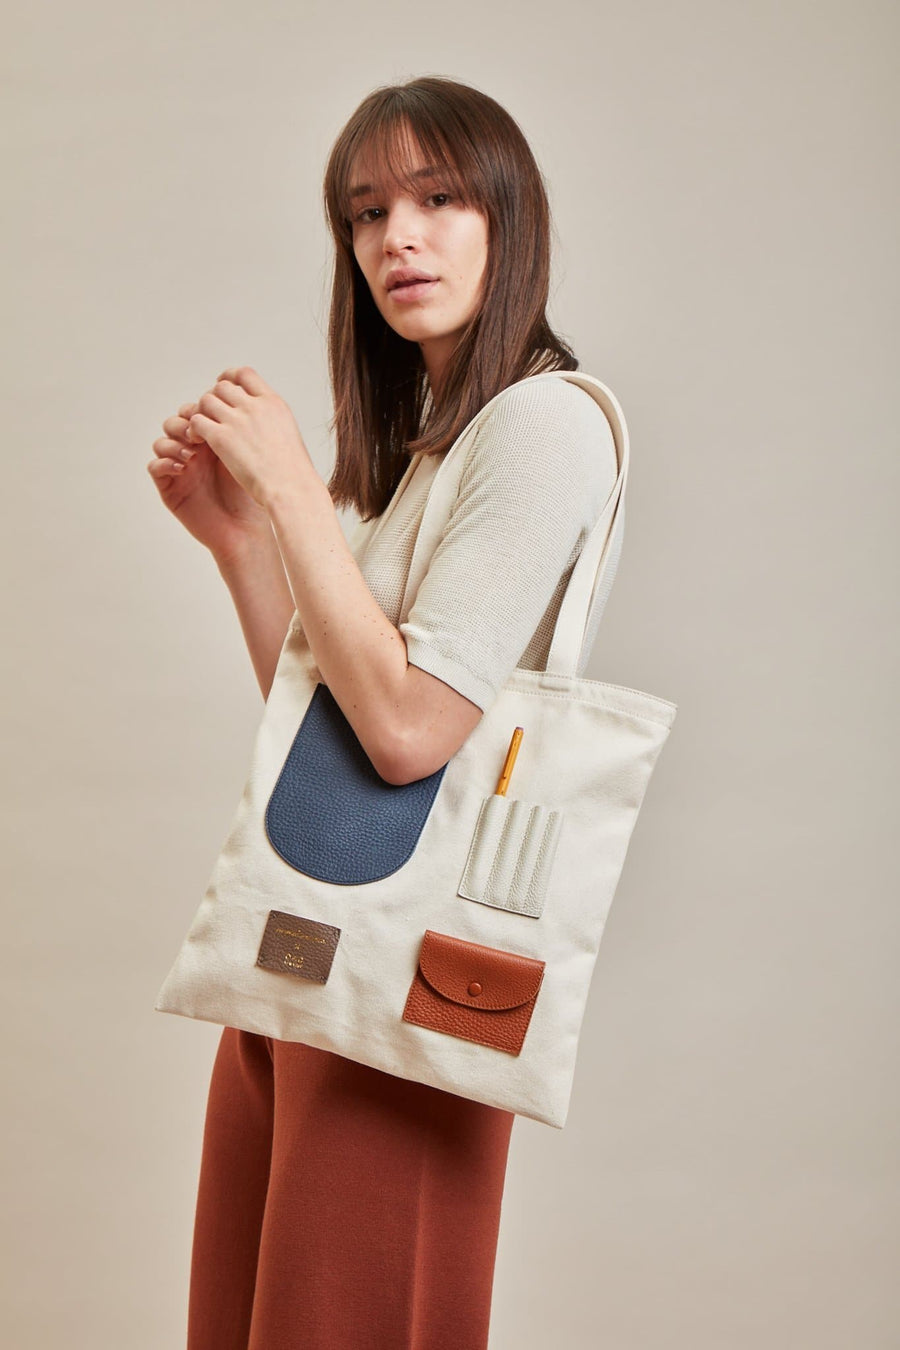 OAD x CW Pencils Collab Tote - Neutrals - OAD NEW YORK